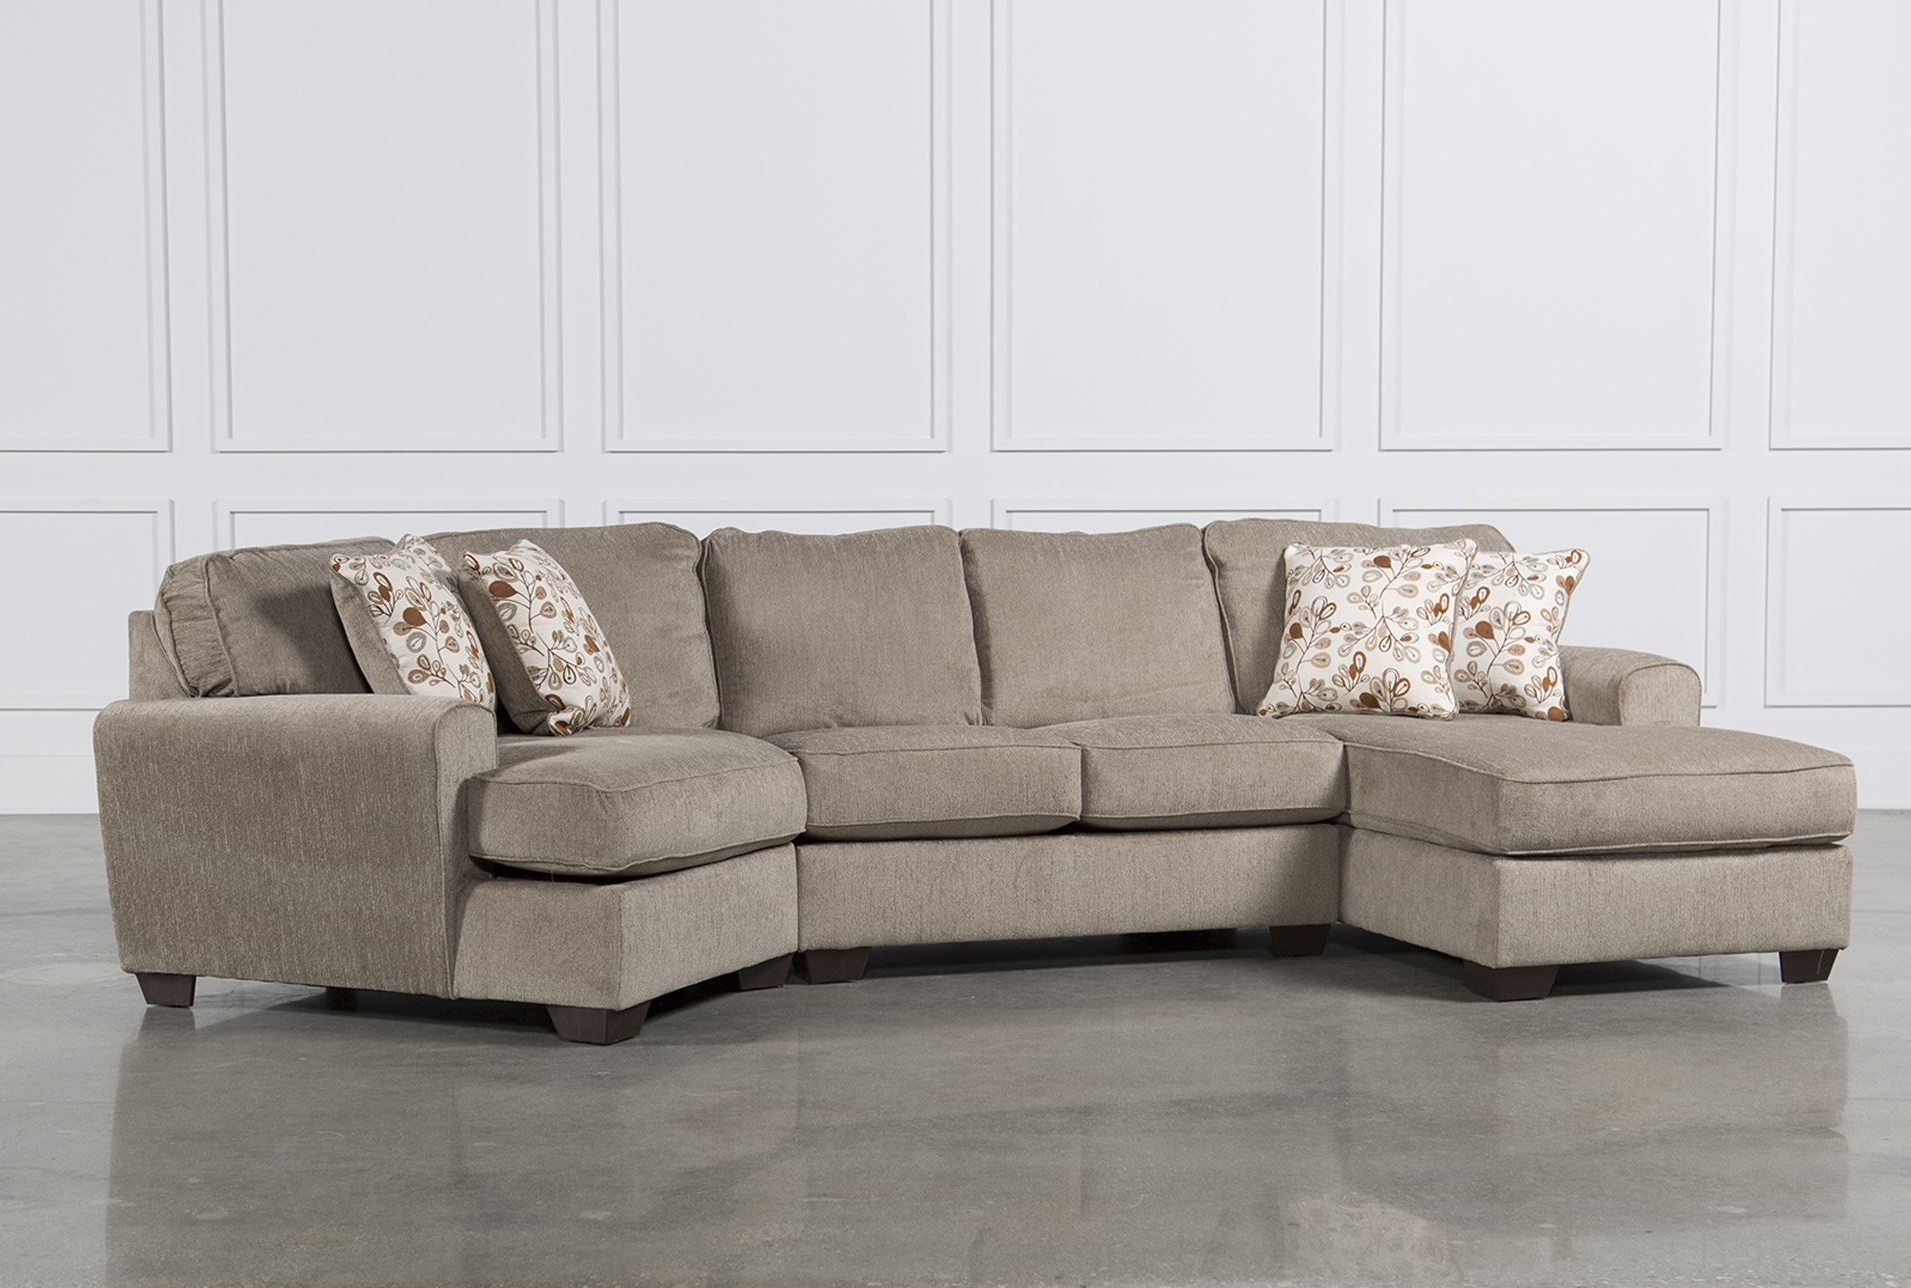 Hannah Right Sectional Sofas Intended For Most Recent Cuddler Sectional Sofa Carena 2 Pc Fabric Sectional Sofa (View 6 of 25)